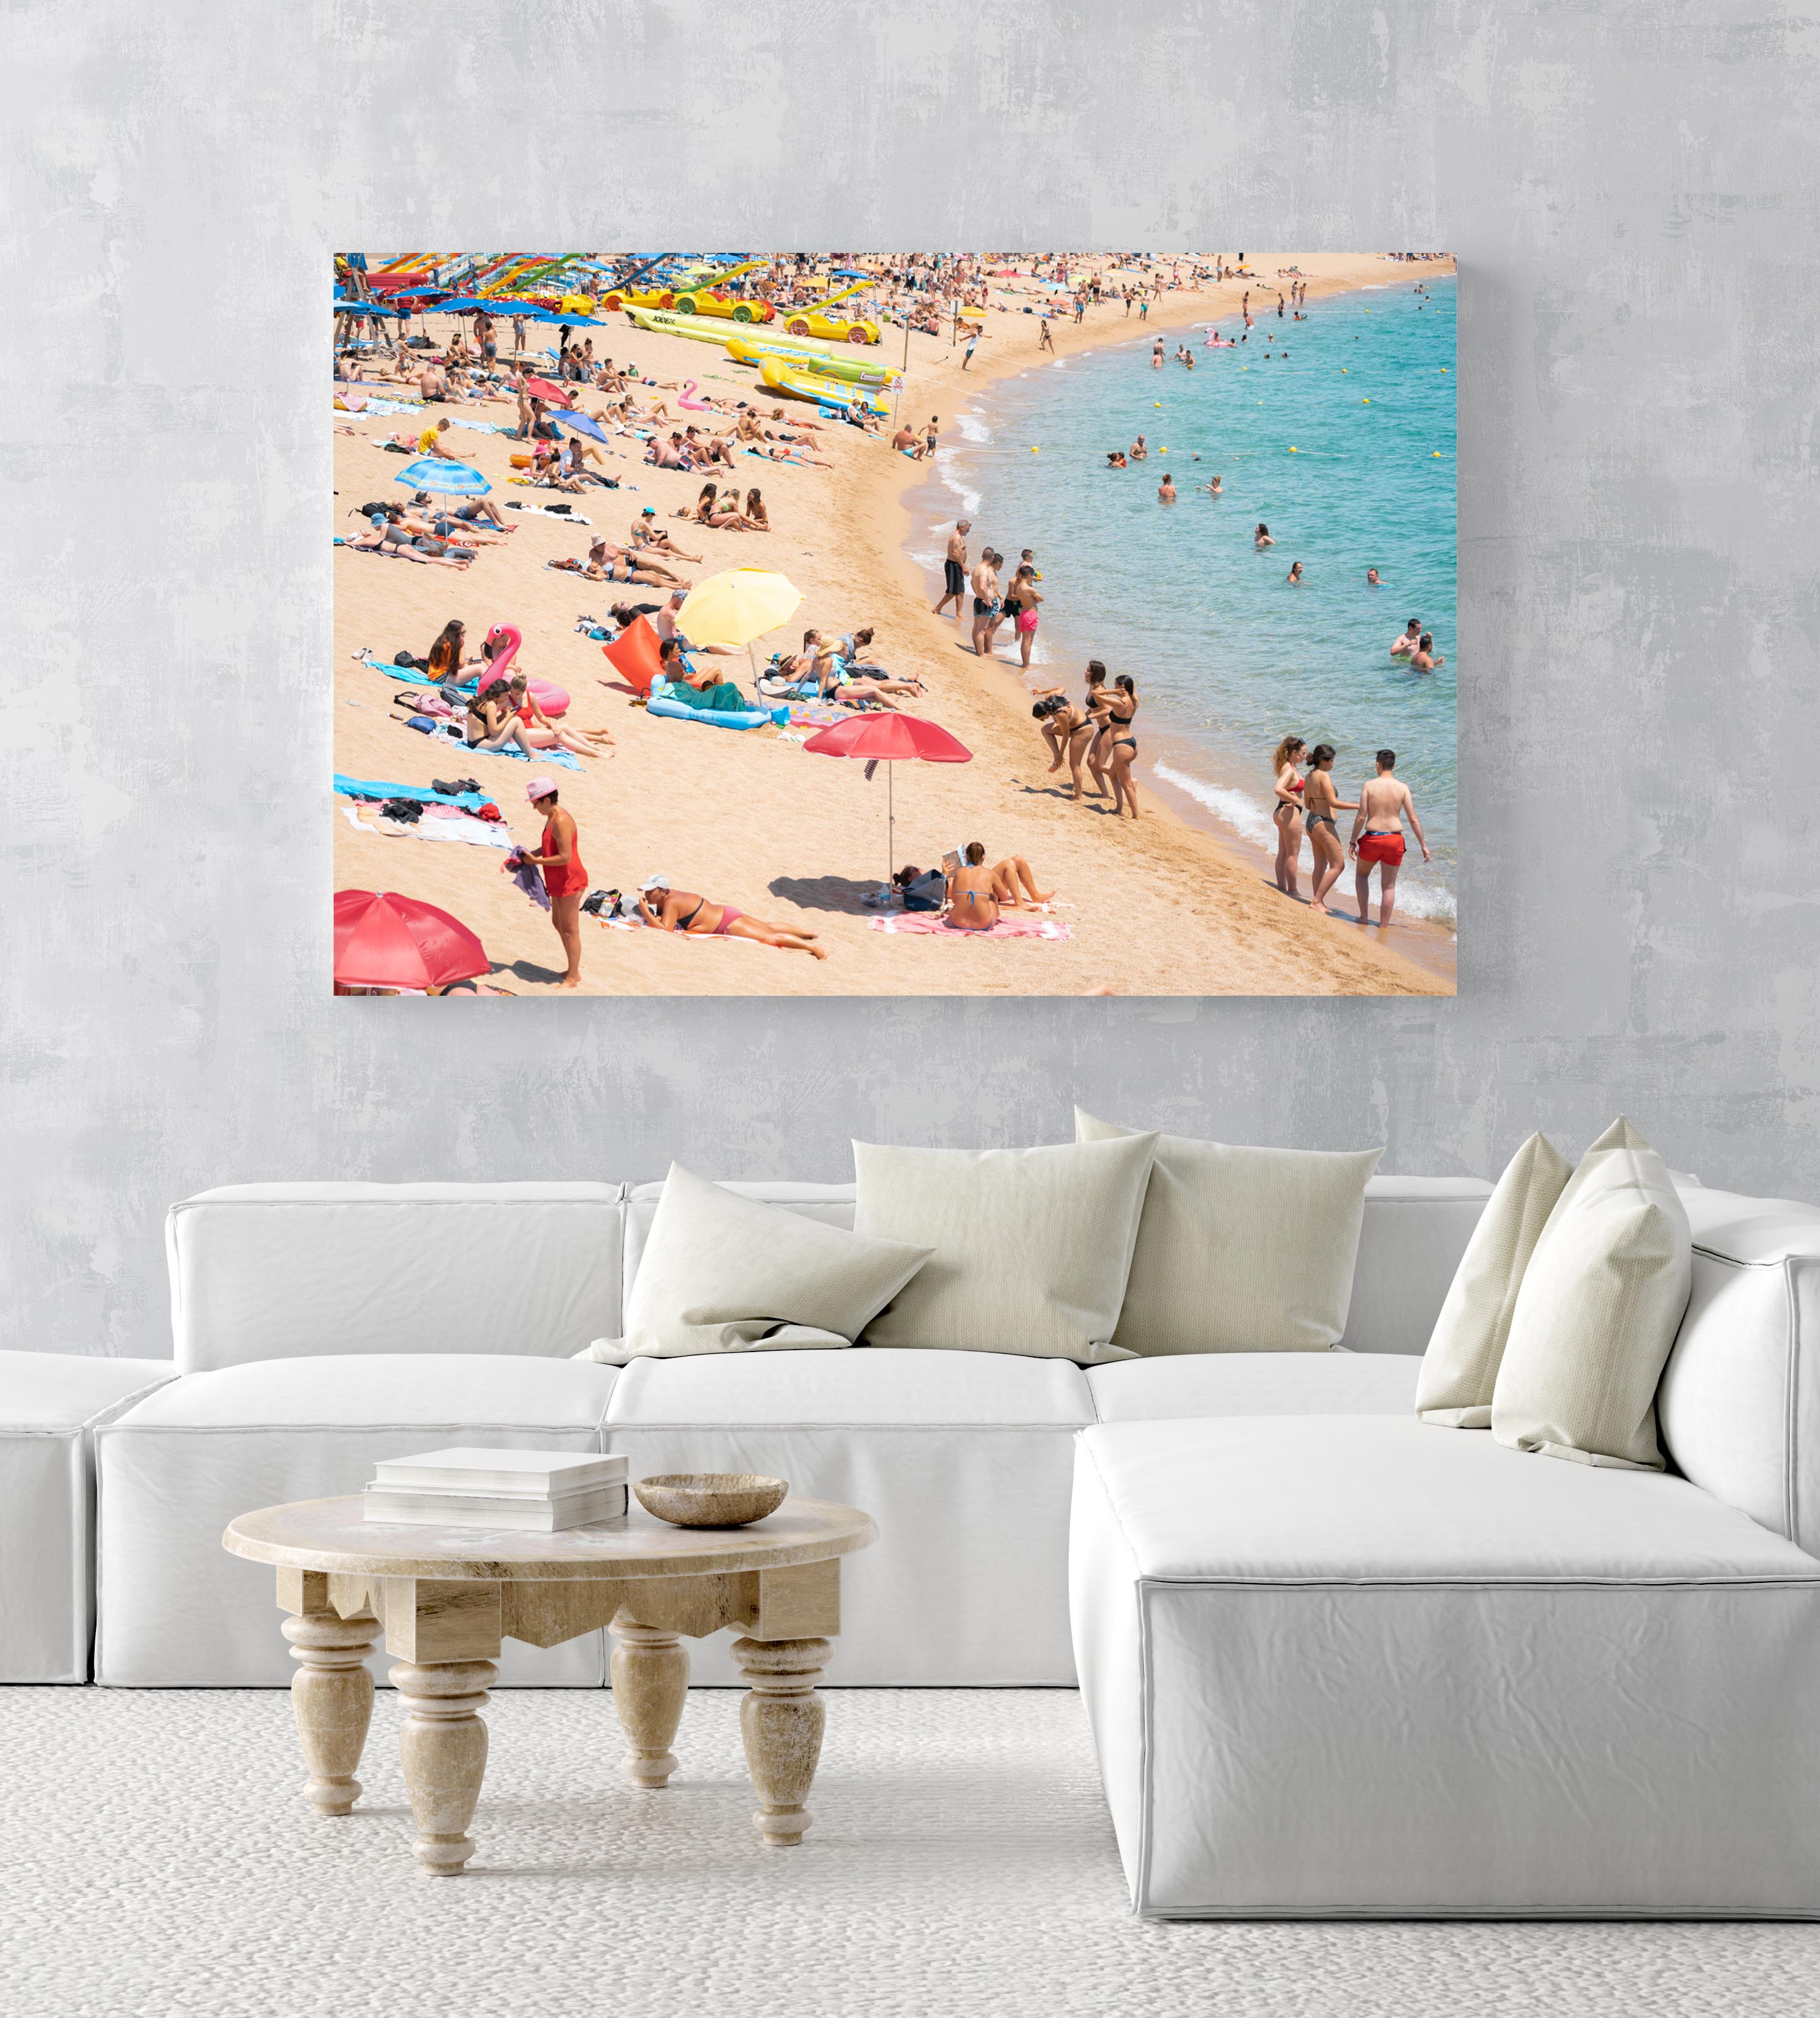 Colors of umbrellas, sand and people on Lloret de Mar beach in an acrylic/perspex frame